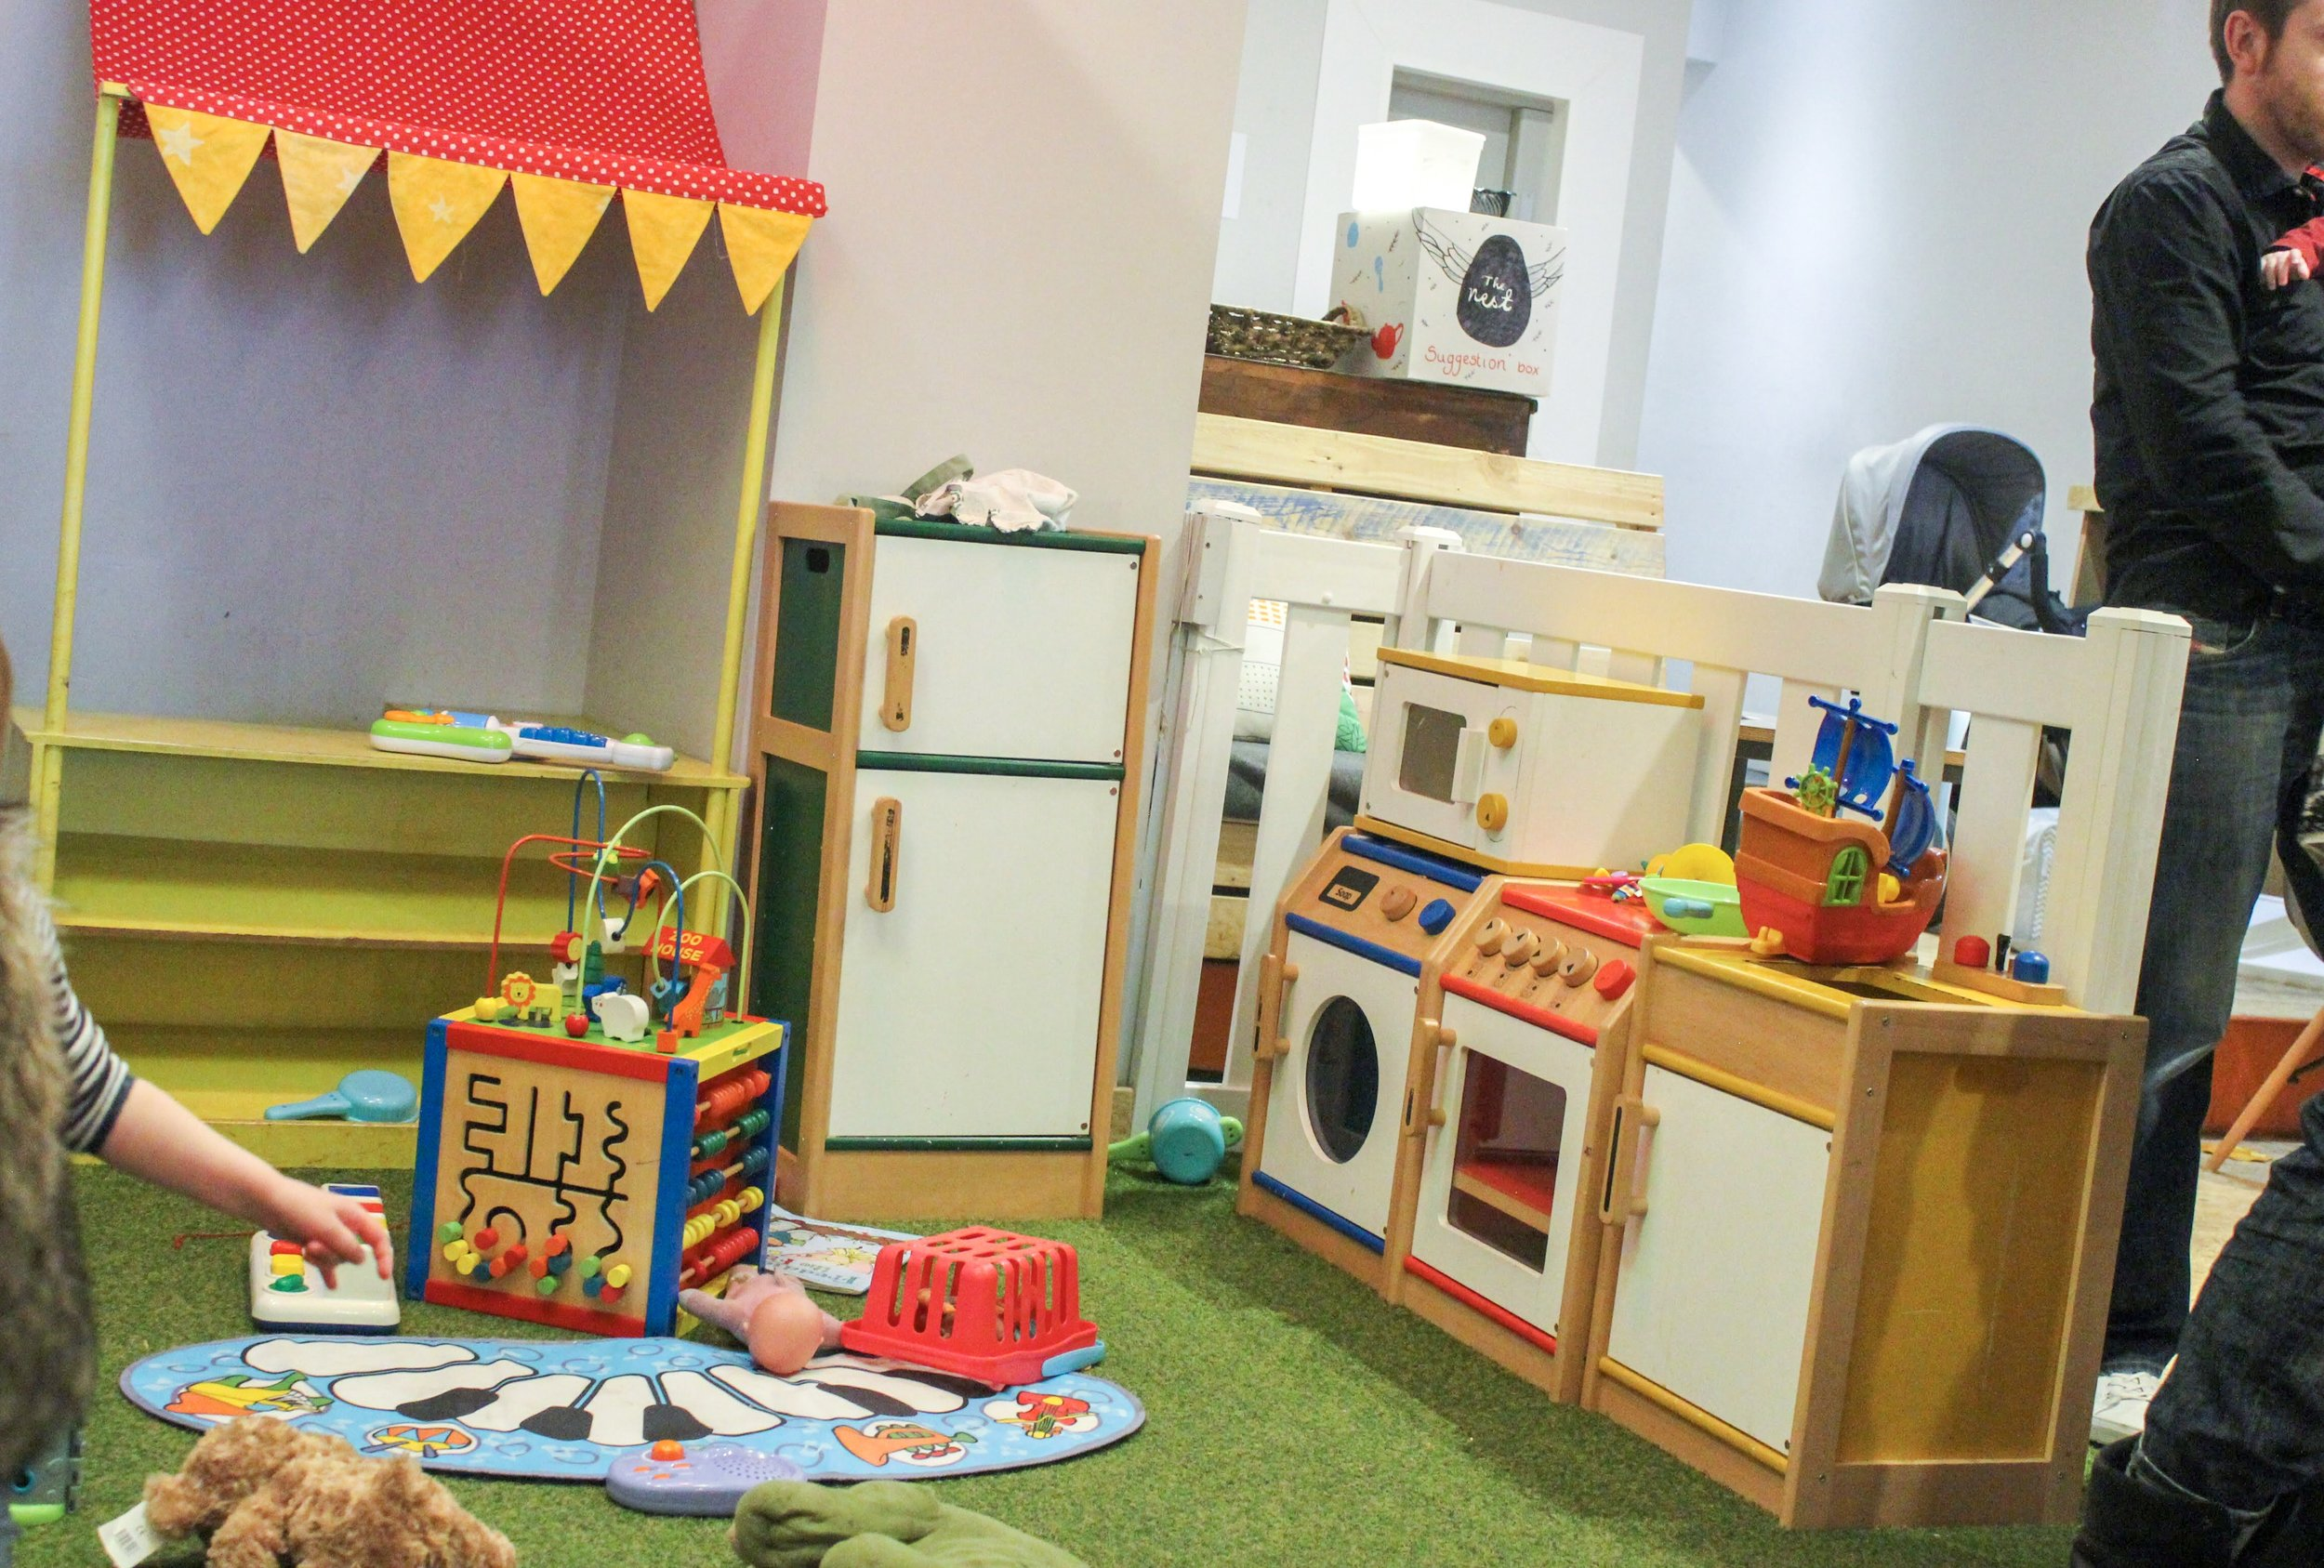 The Nest's playspace